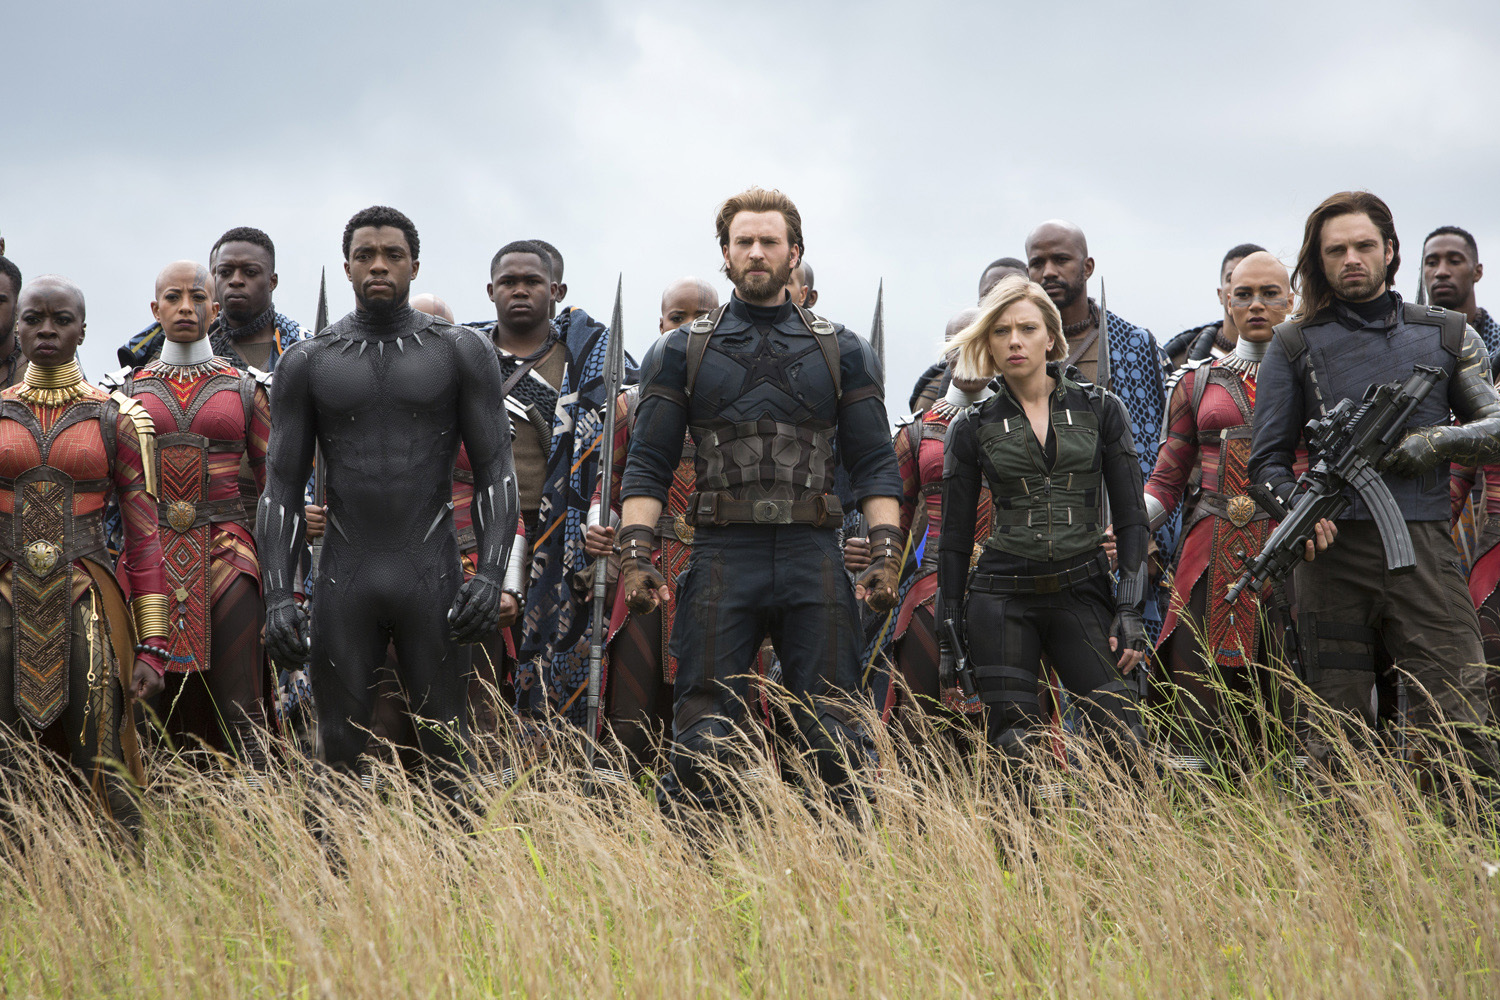 CULMINATION. 'Avengers: Infinity War' is only one half of a film if one sees it as the titular superheroesu2019 narrative. Photo by Chuck Zlotnick/Marvel Studios 2018